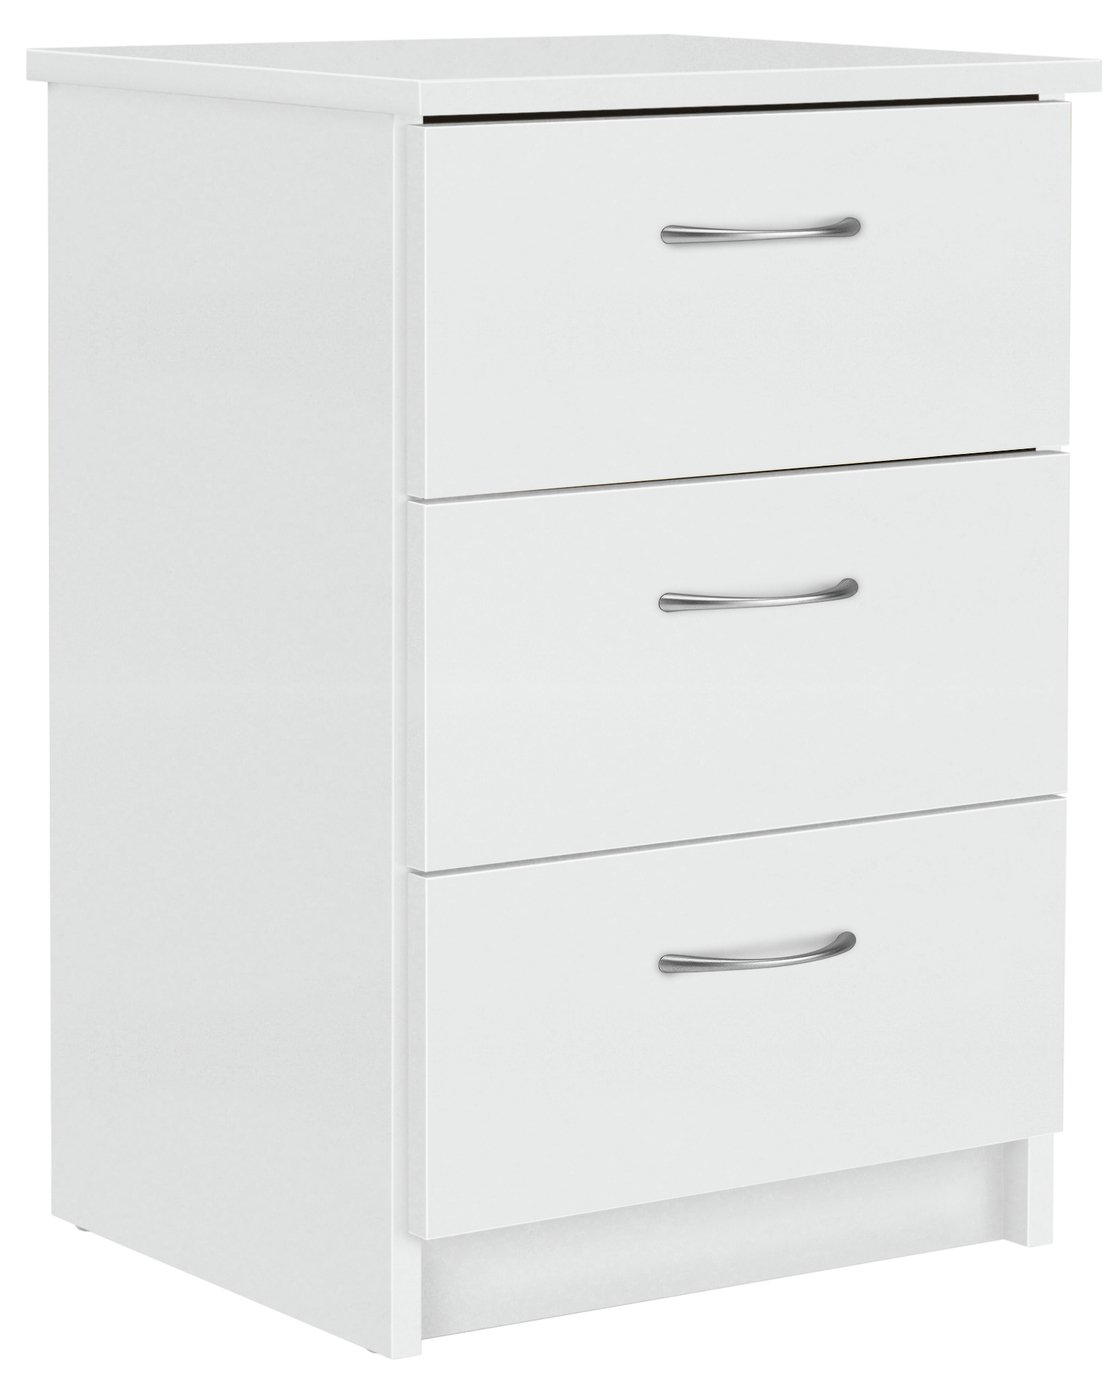 Argos Home Cheval 3 Drawer Bedside Table - White